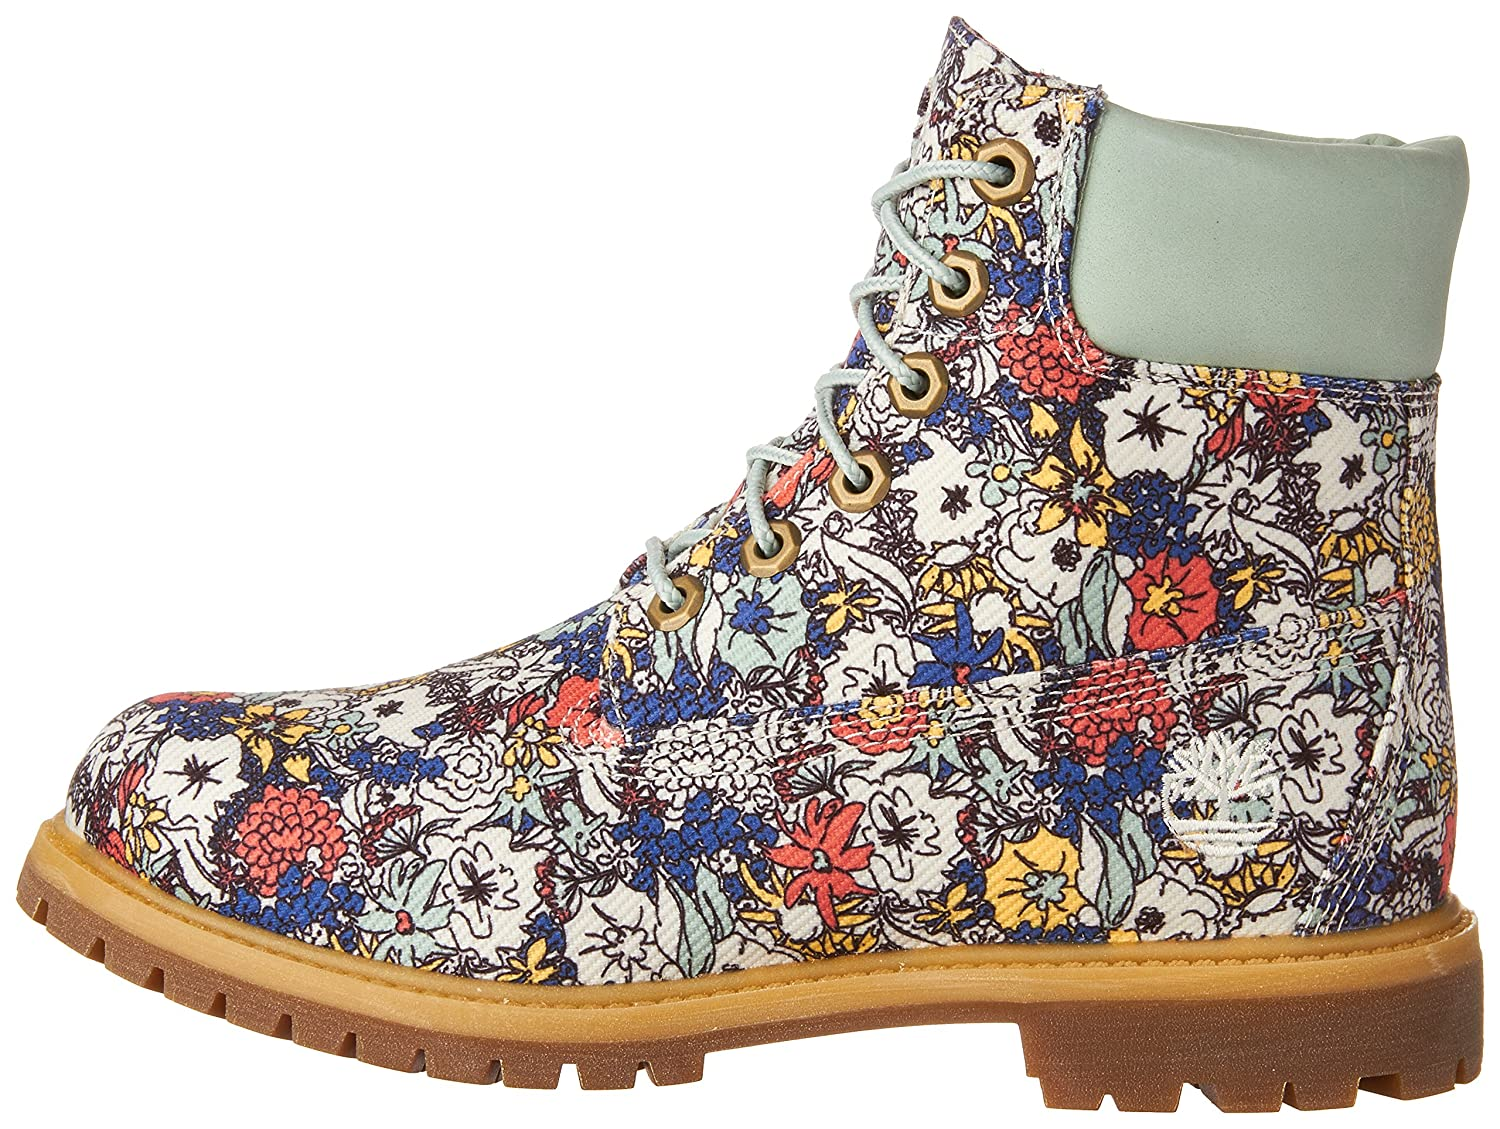 Timberland Women's ICON FABRIC Chukka Boots ICON FABRIC BOOT